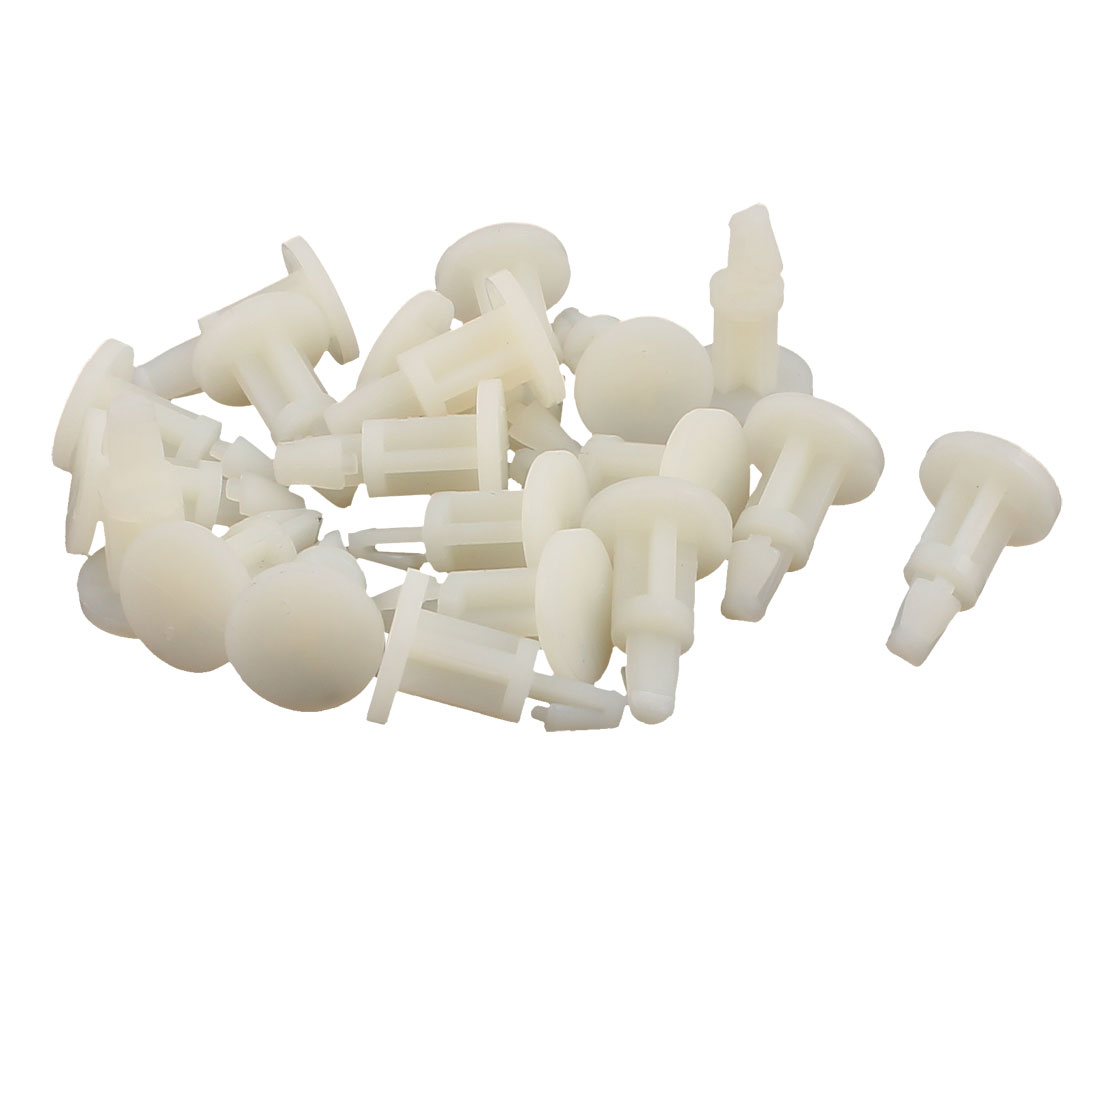 20 Pcs Circuit Board Reverse Mount Insulated PCB Spacer 10mm Supporting Height